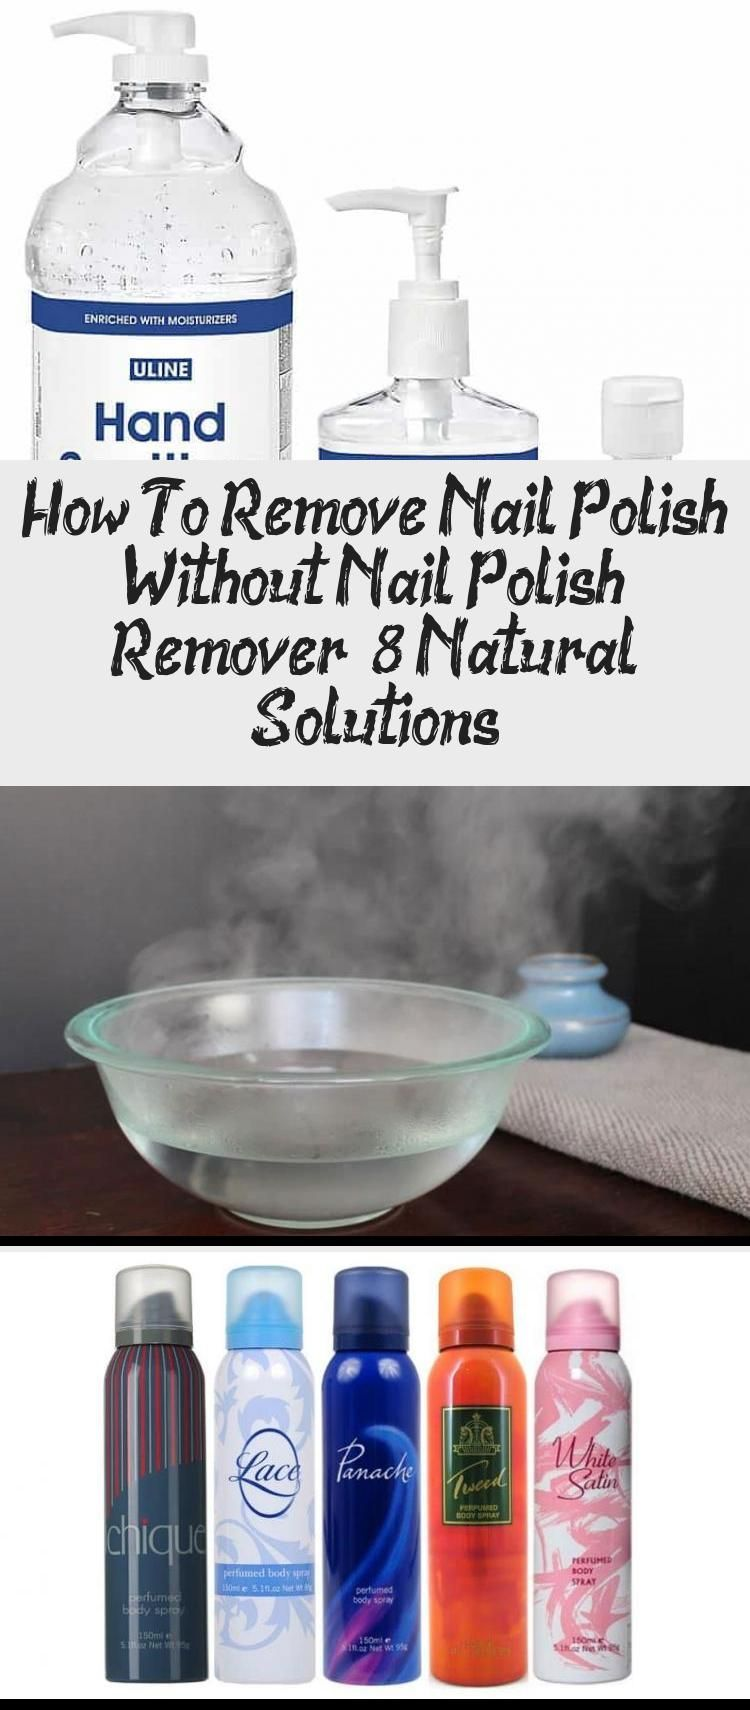 How To Remove Nail Polish Without Nail Polish Remover – 8 Natural Solutions - MakeUp -  How To Remove Nail Polish Without Nail Polish Remover – 8 Natural Solutions #nailpolishPink #nail - #makeup #Nail #nailpolishhacks #nailpolishpink #natural #naturalnailpolish #polish #remove #remover #solutions #without